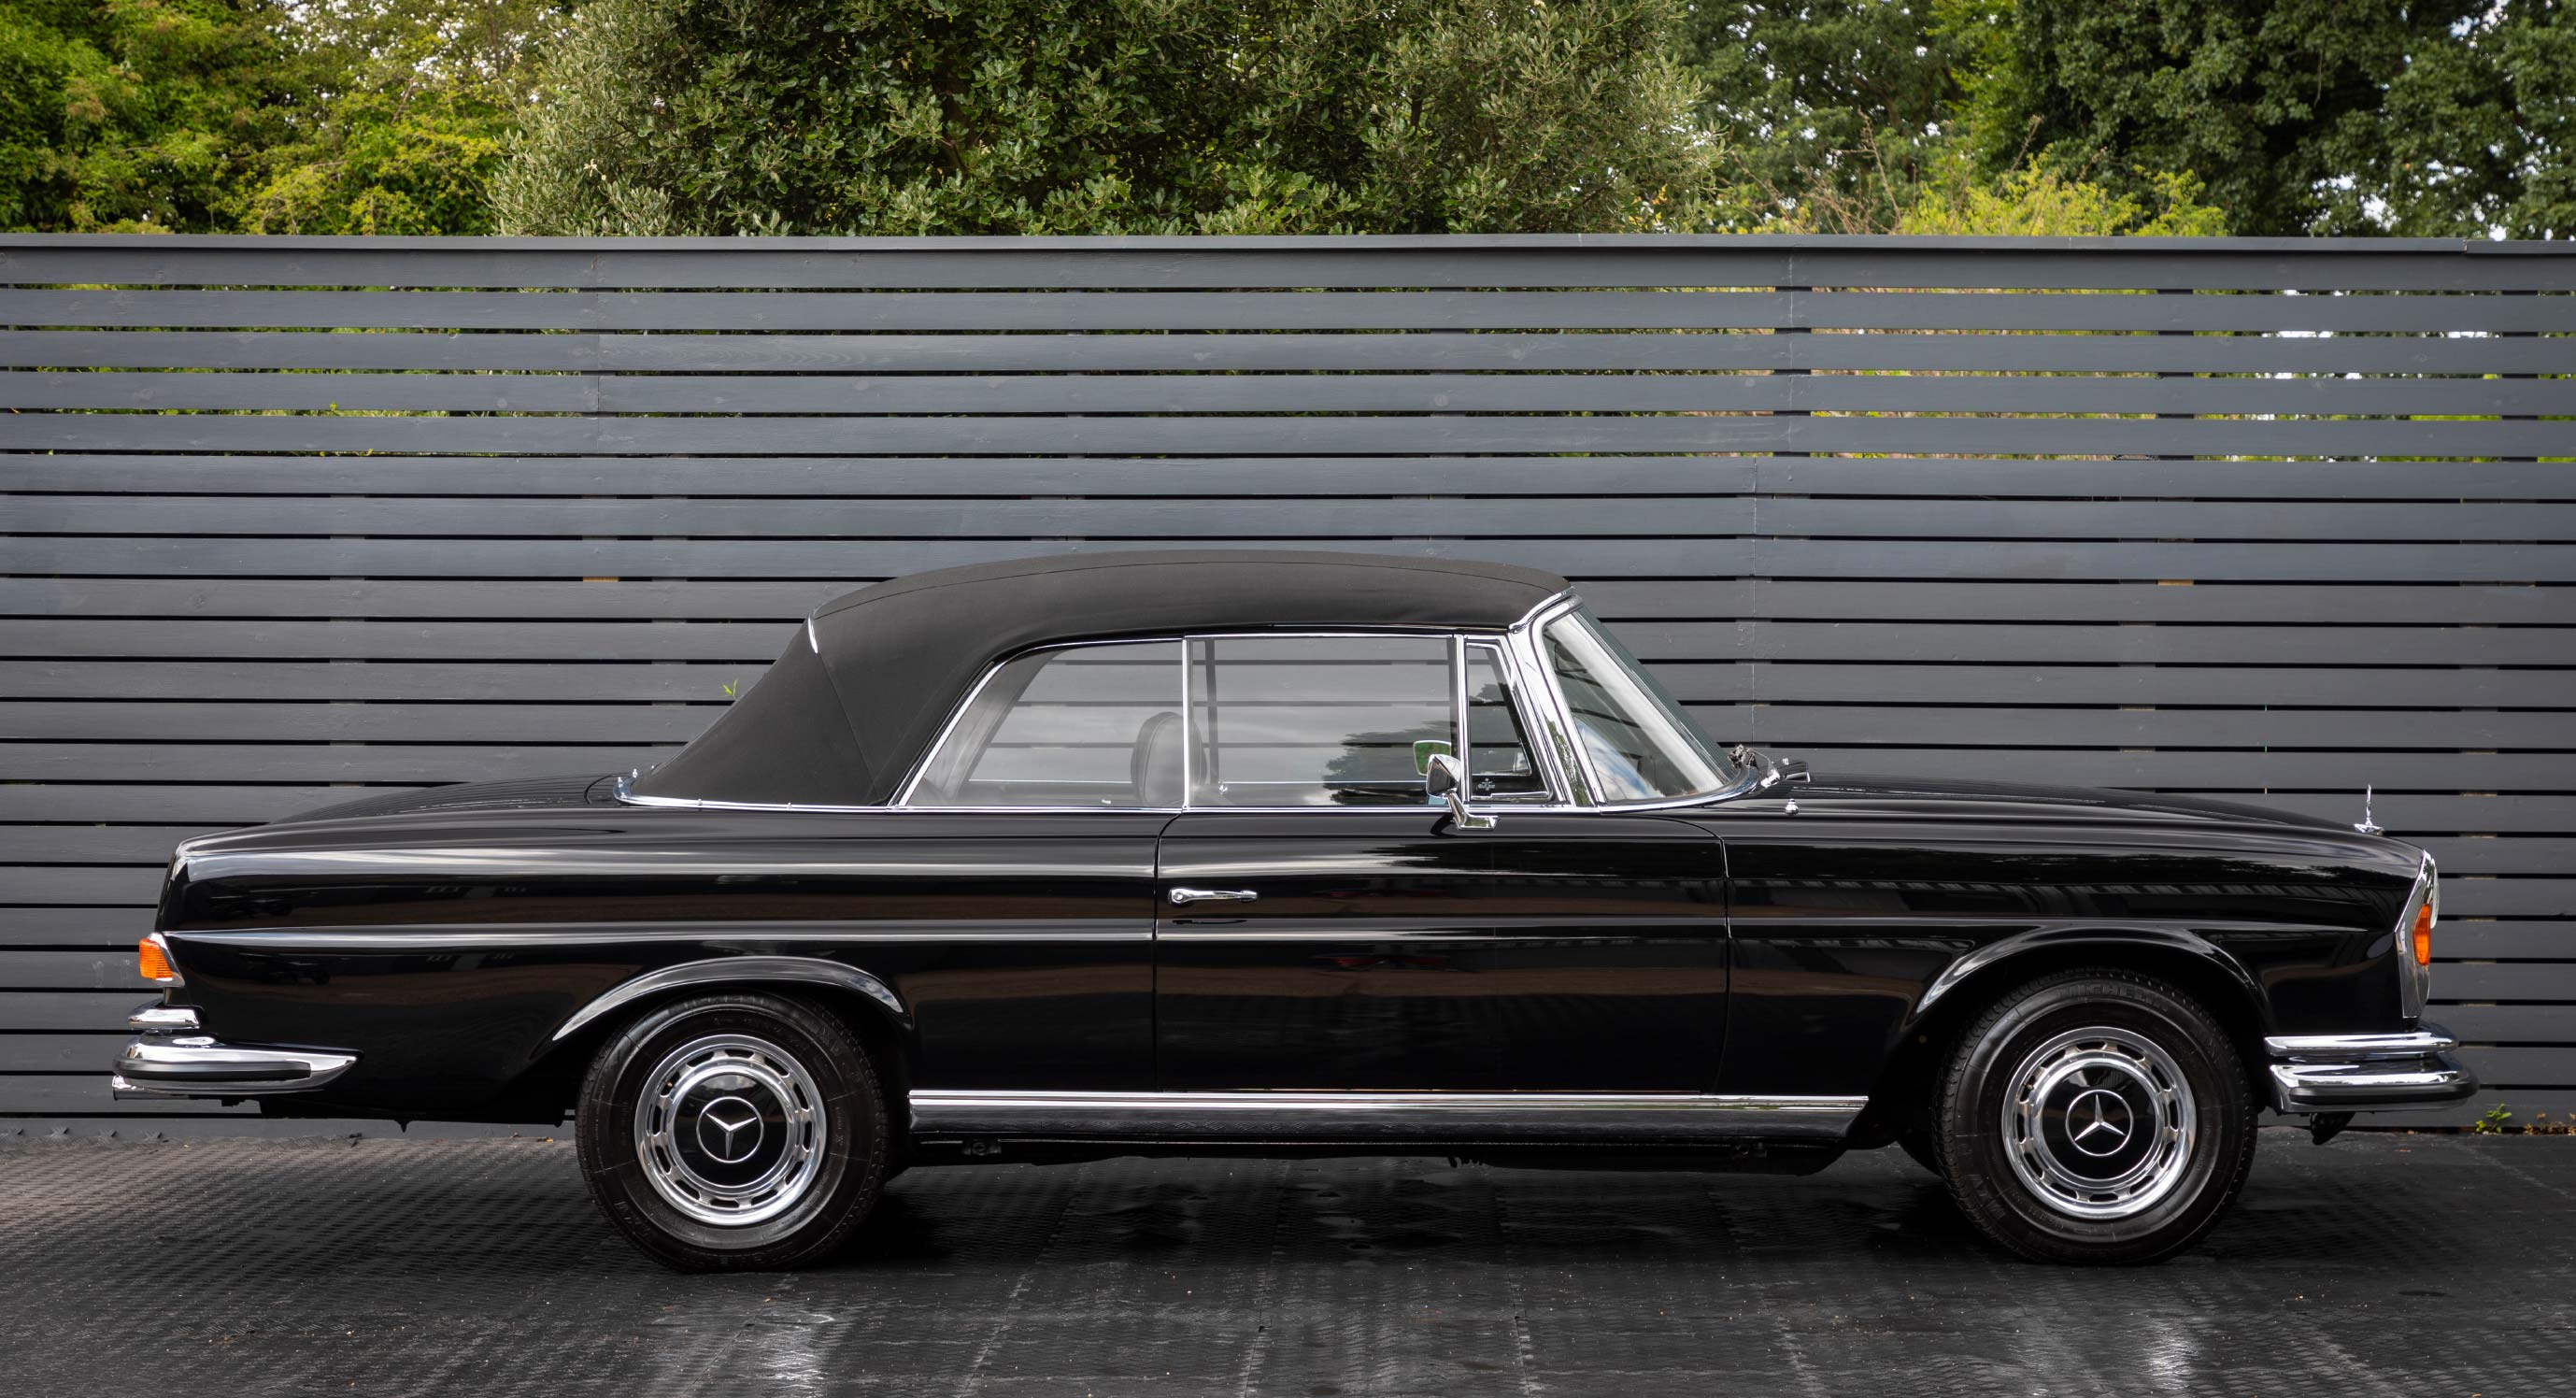 Classic Car Find Of The Week: 1970 Mercedes Benz 280 SE 3.5 Cabriolet